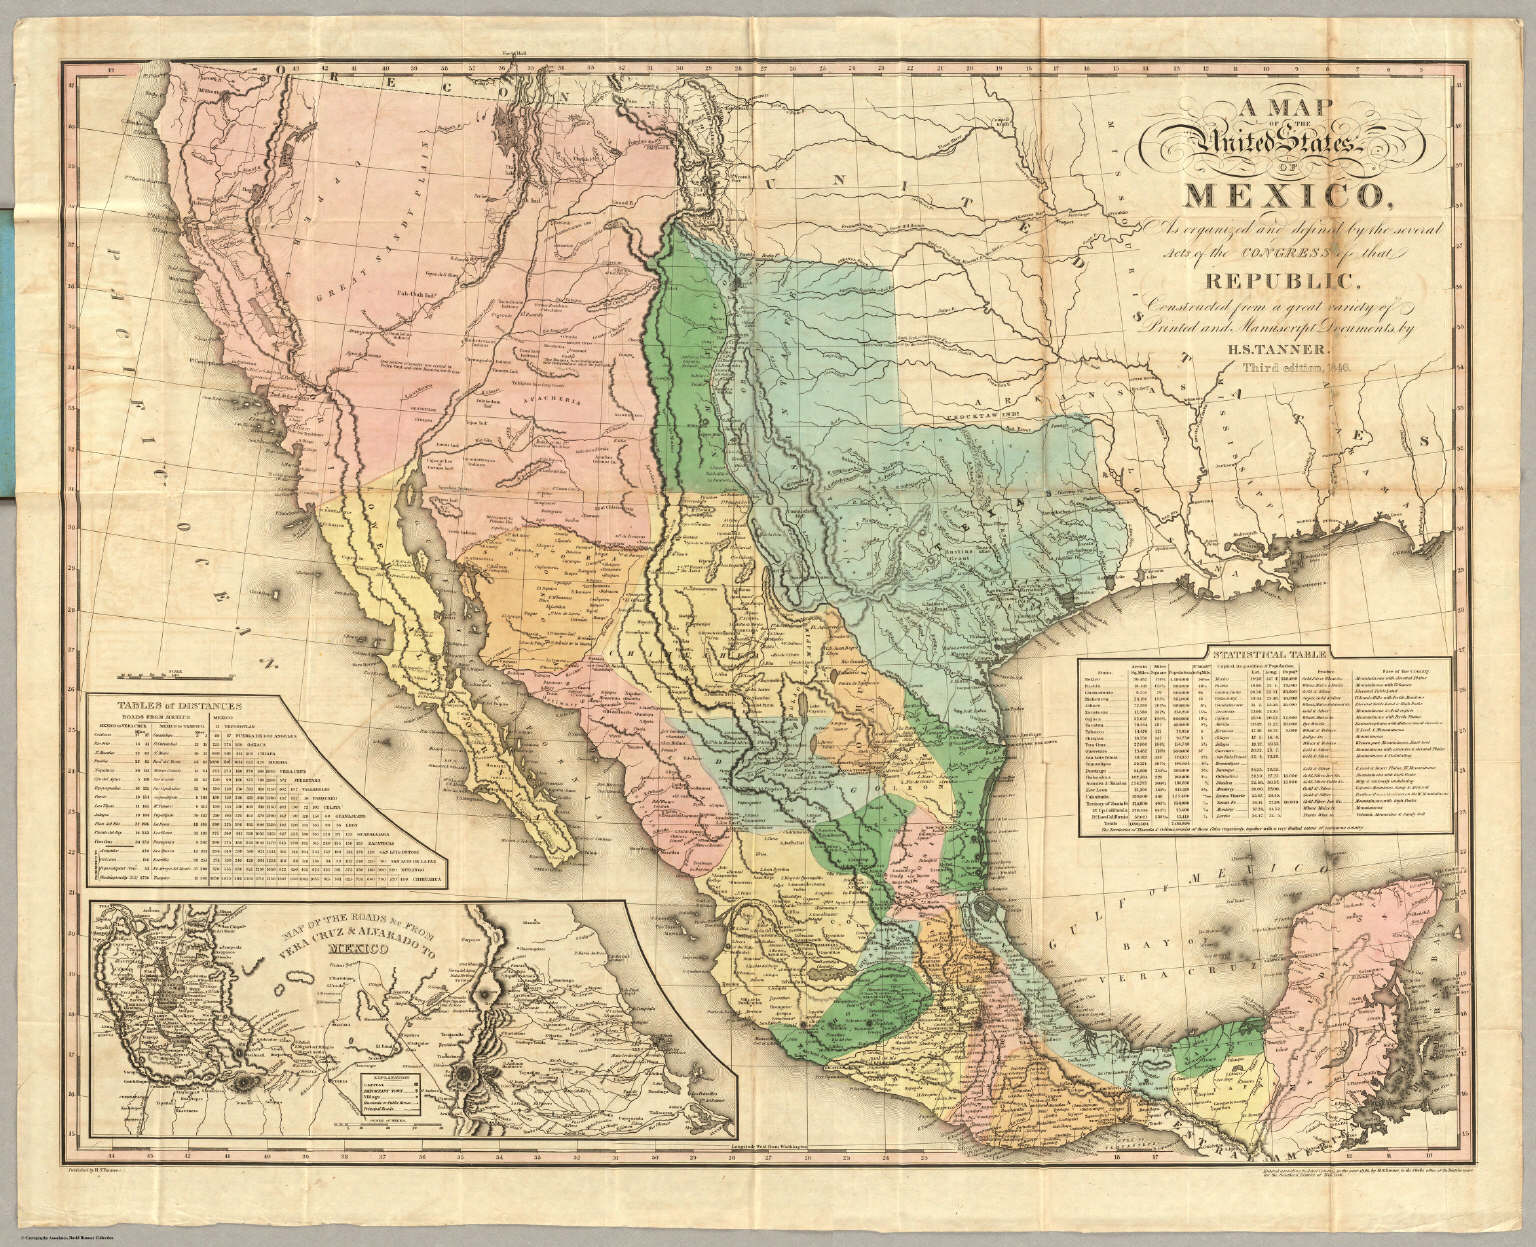 State Mexico Map.Map Of The United States Of Mexico David Rumsey Historical Map